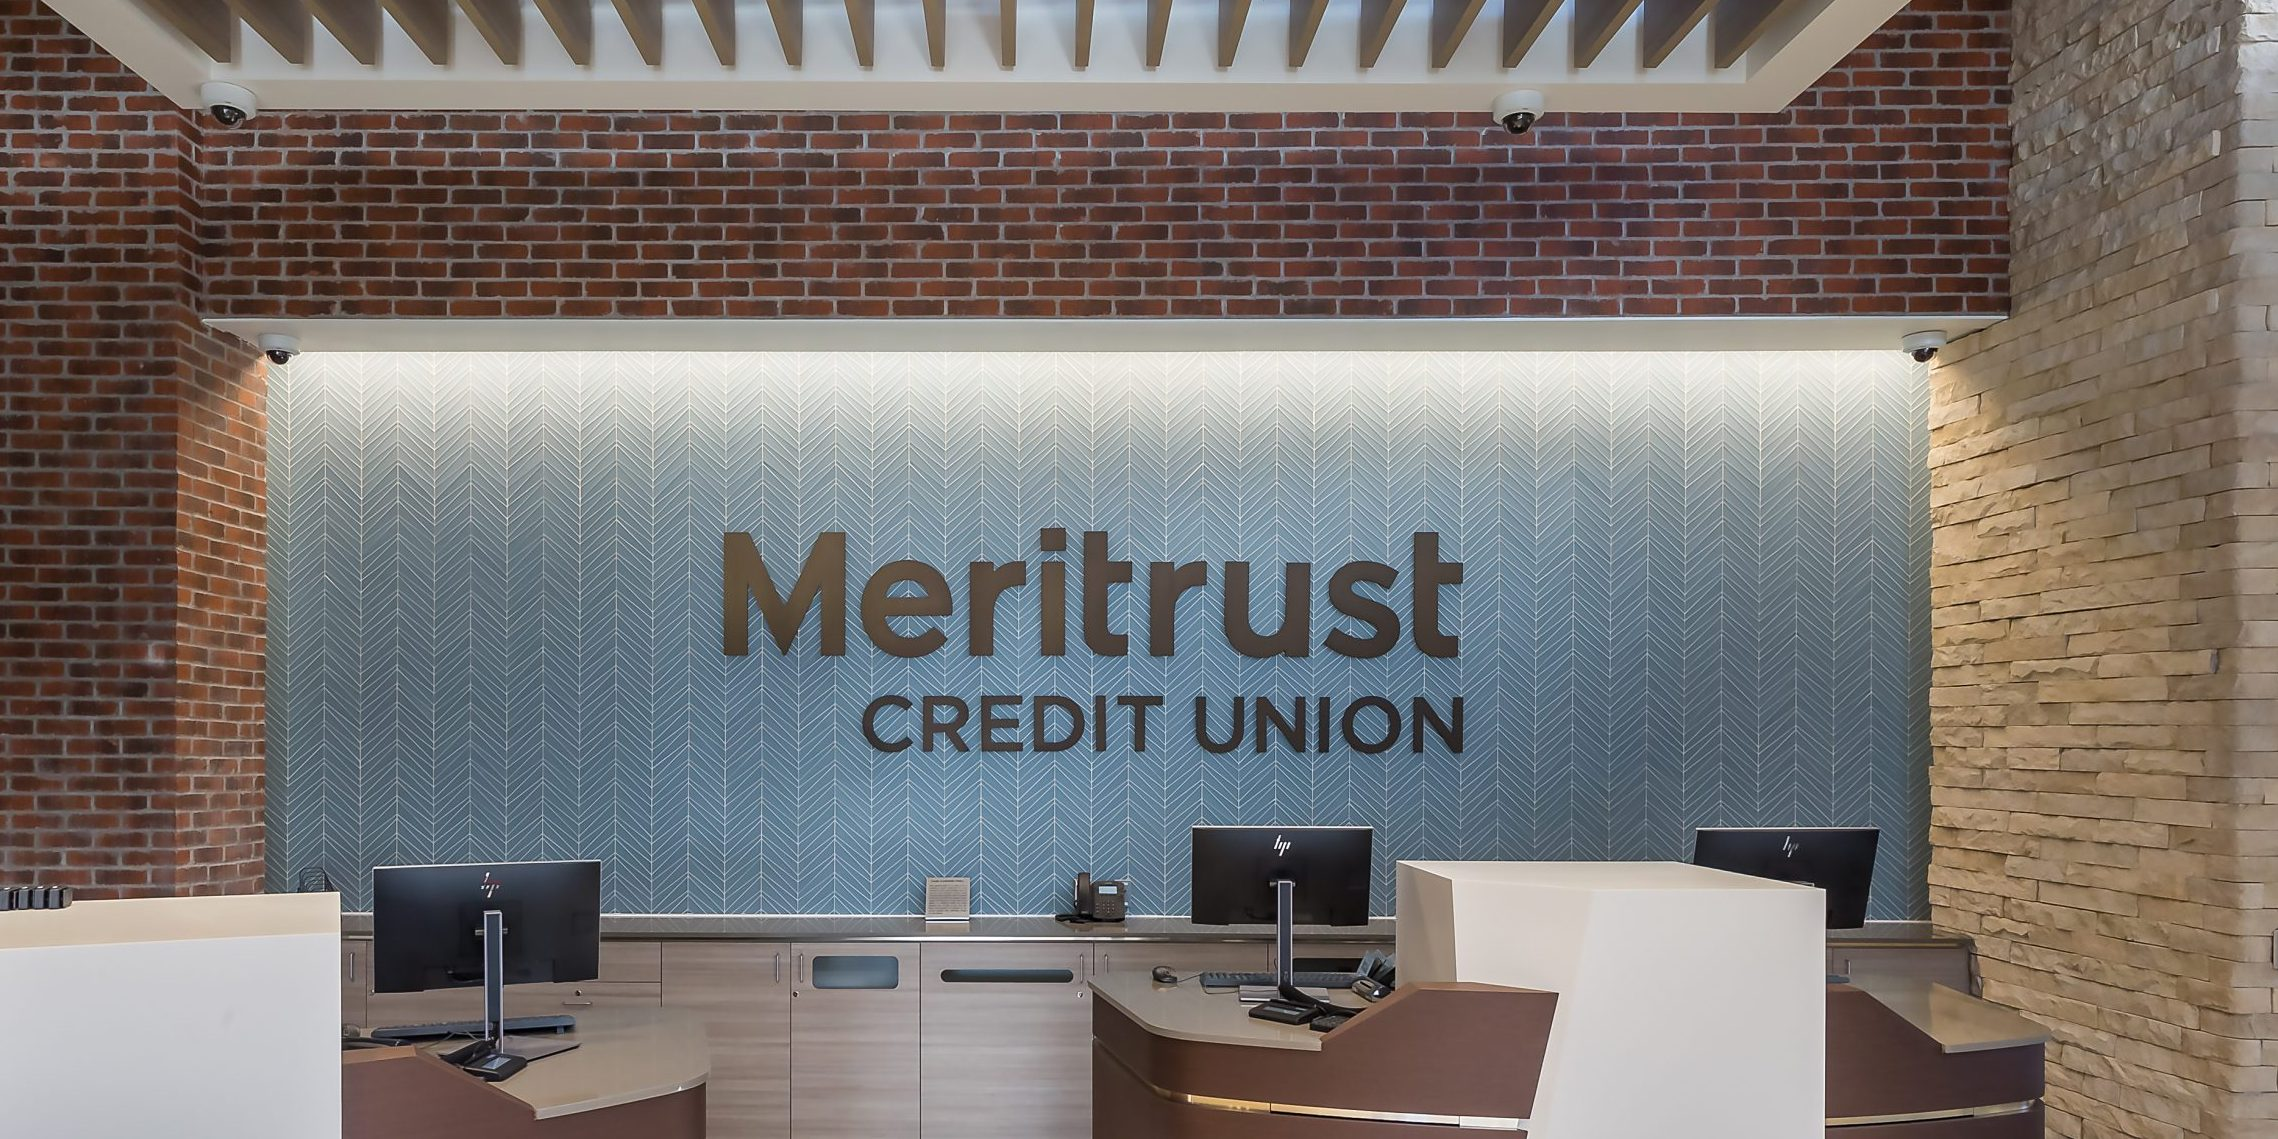 Meritrust Credit Union branch sign